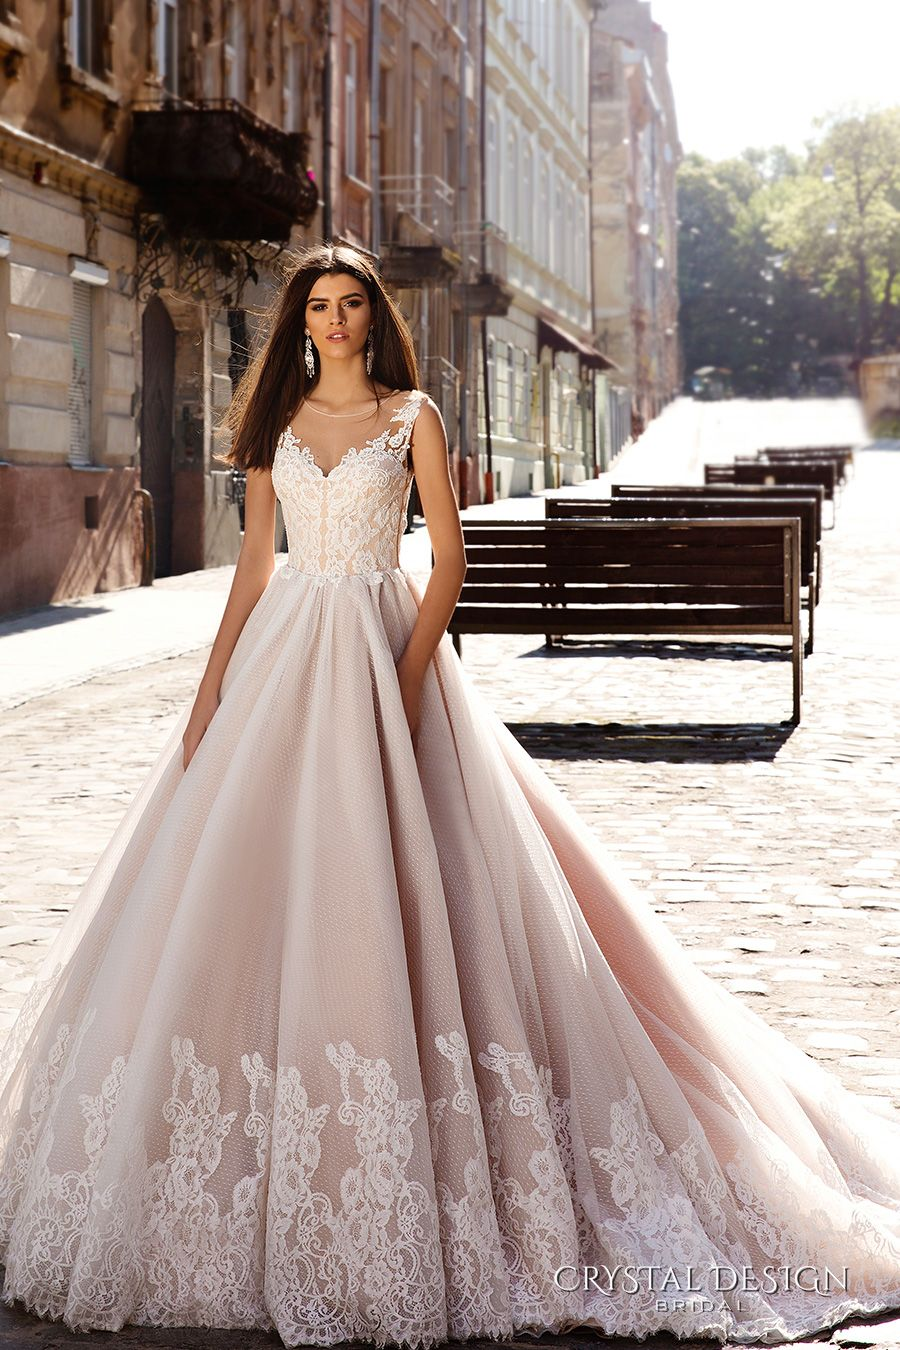 Via crystal design wedding dresses wedding inspirasi